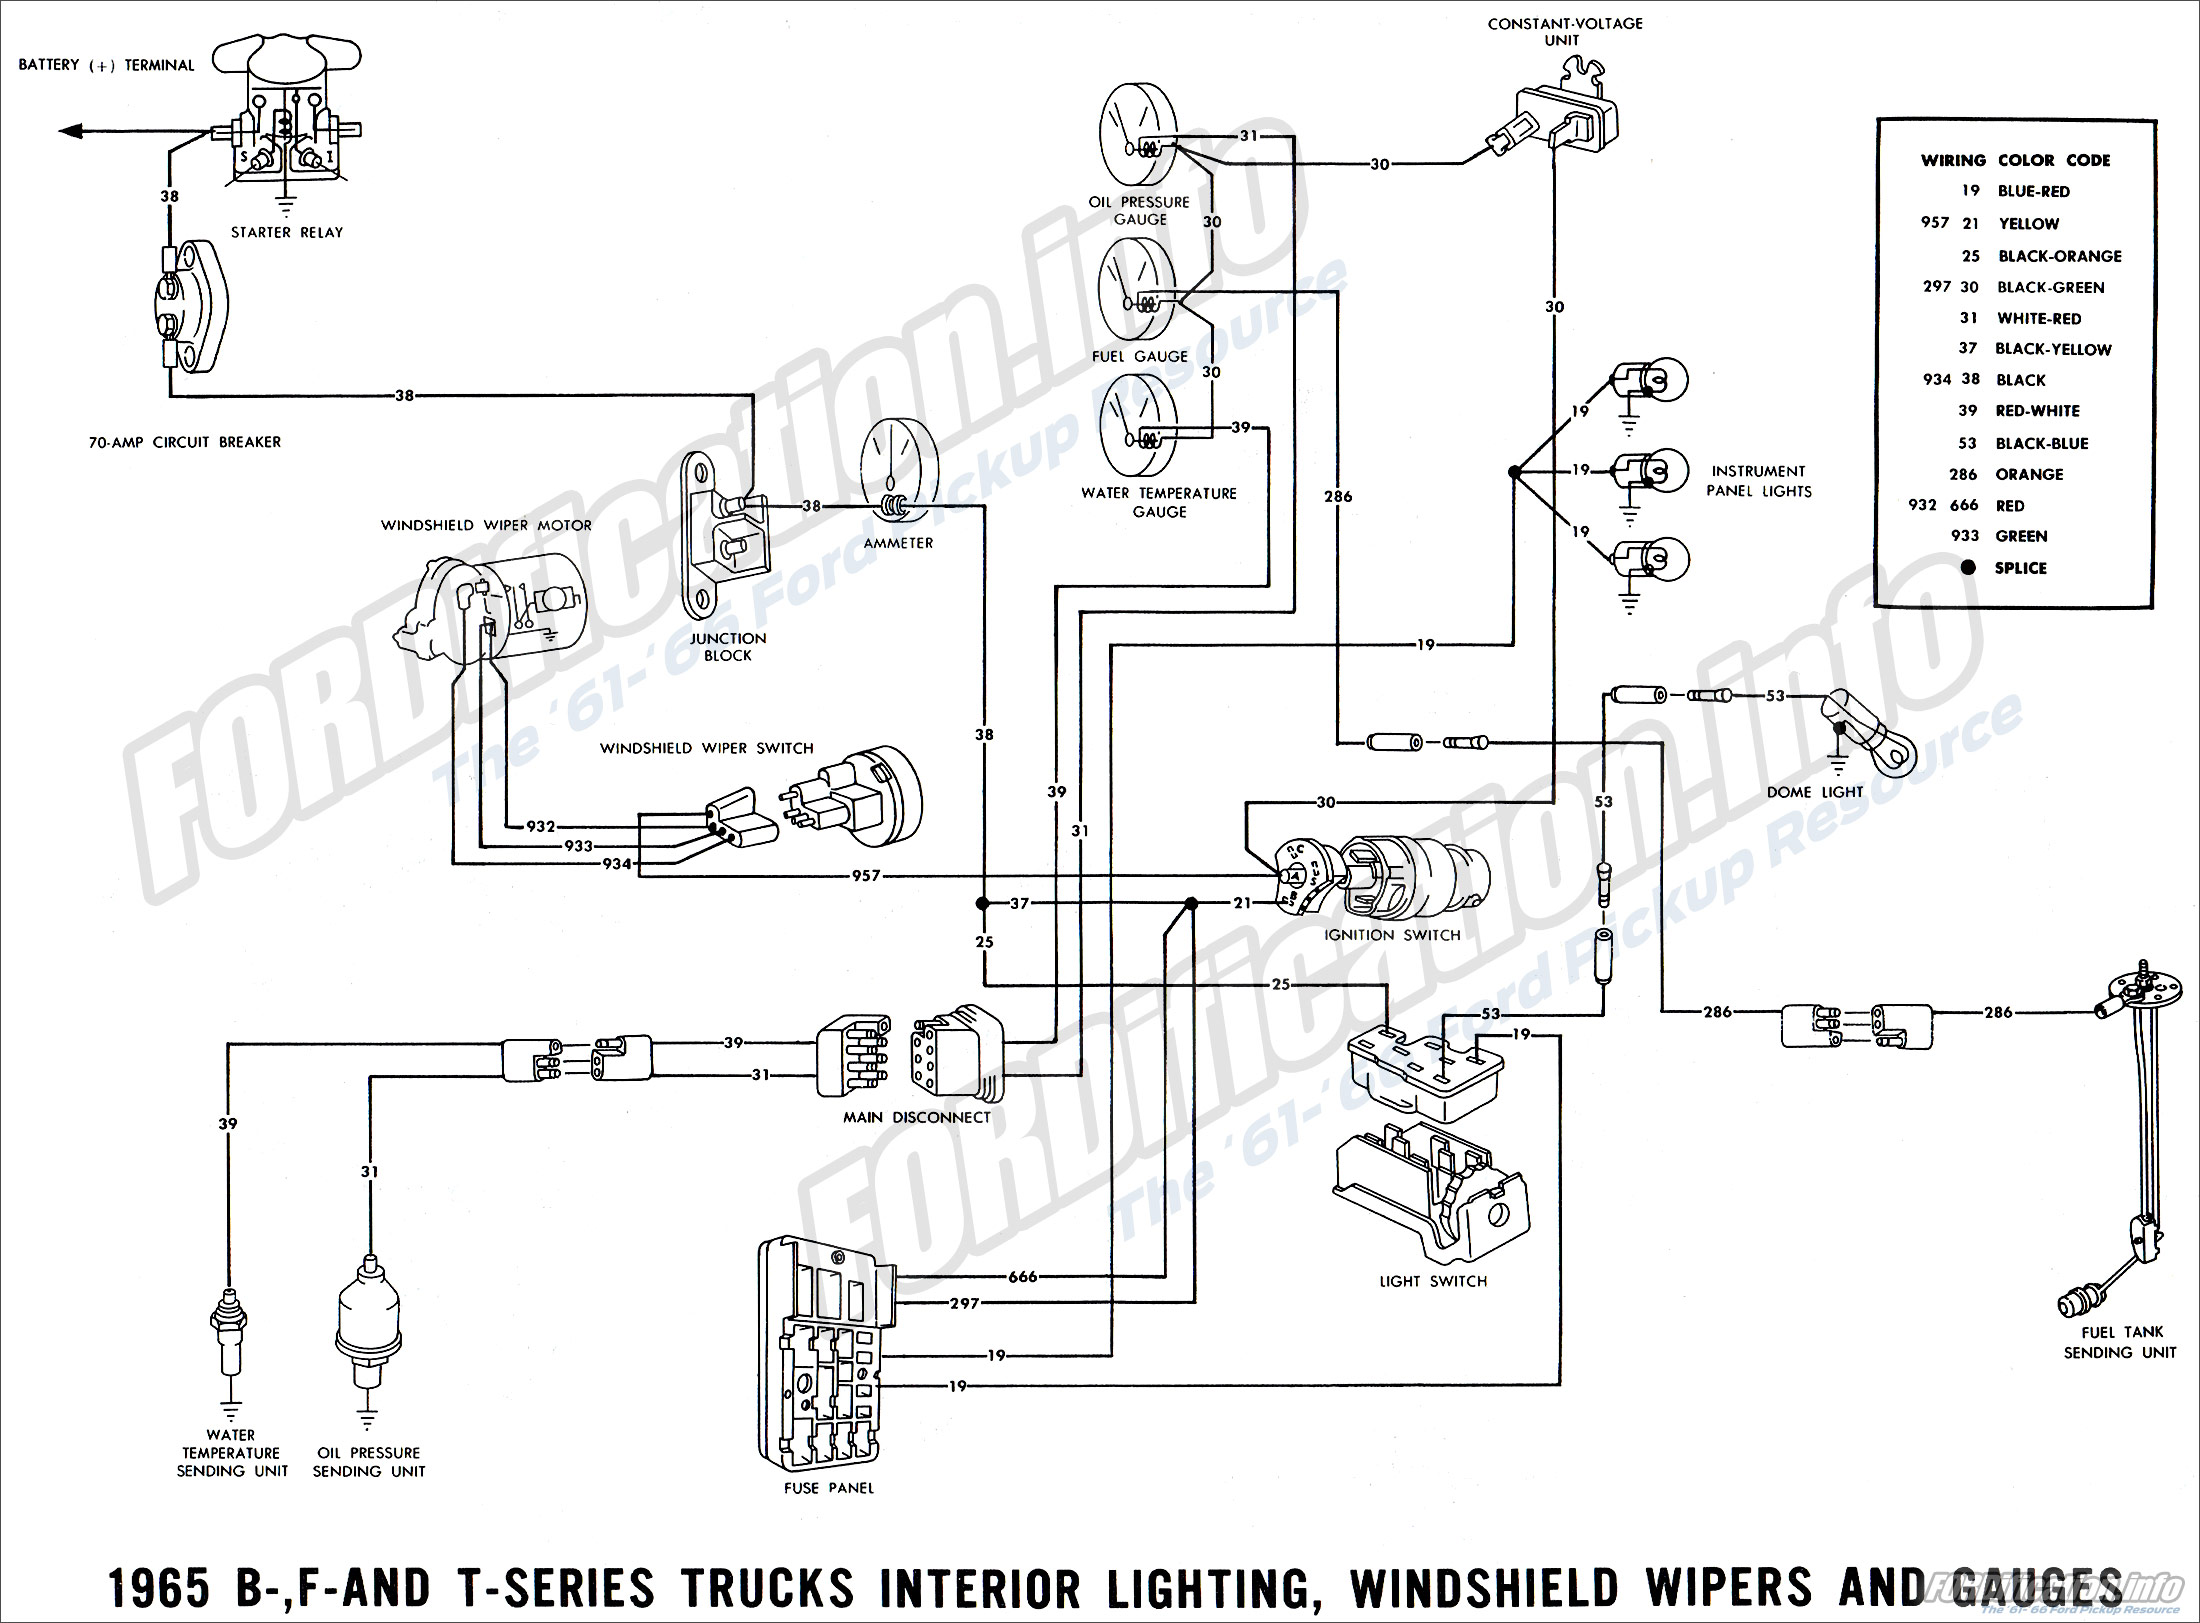 Wiring Diagram For A 1964 Ford 4000 Tractor